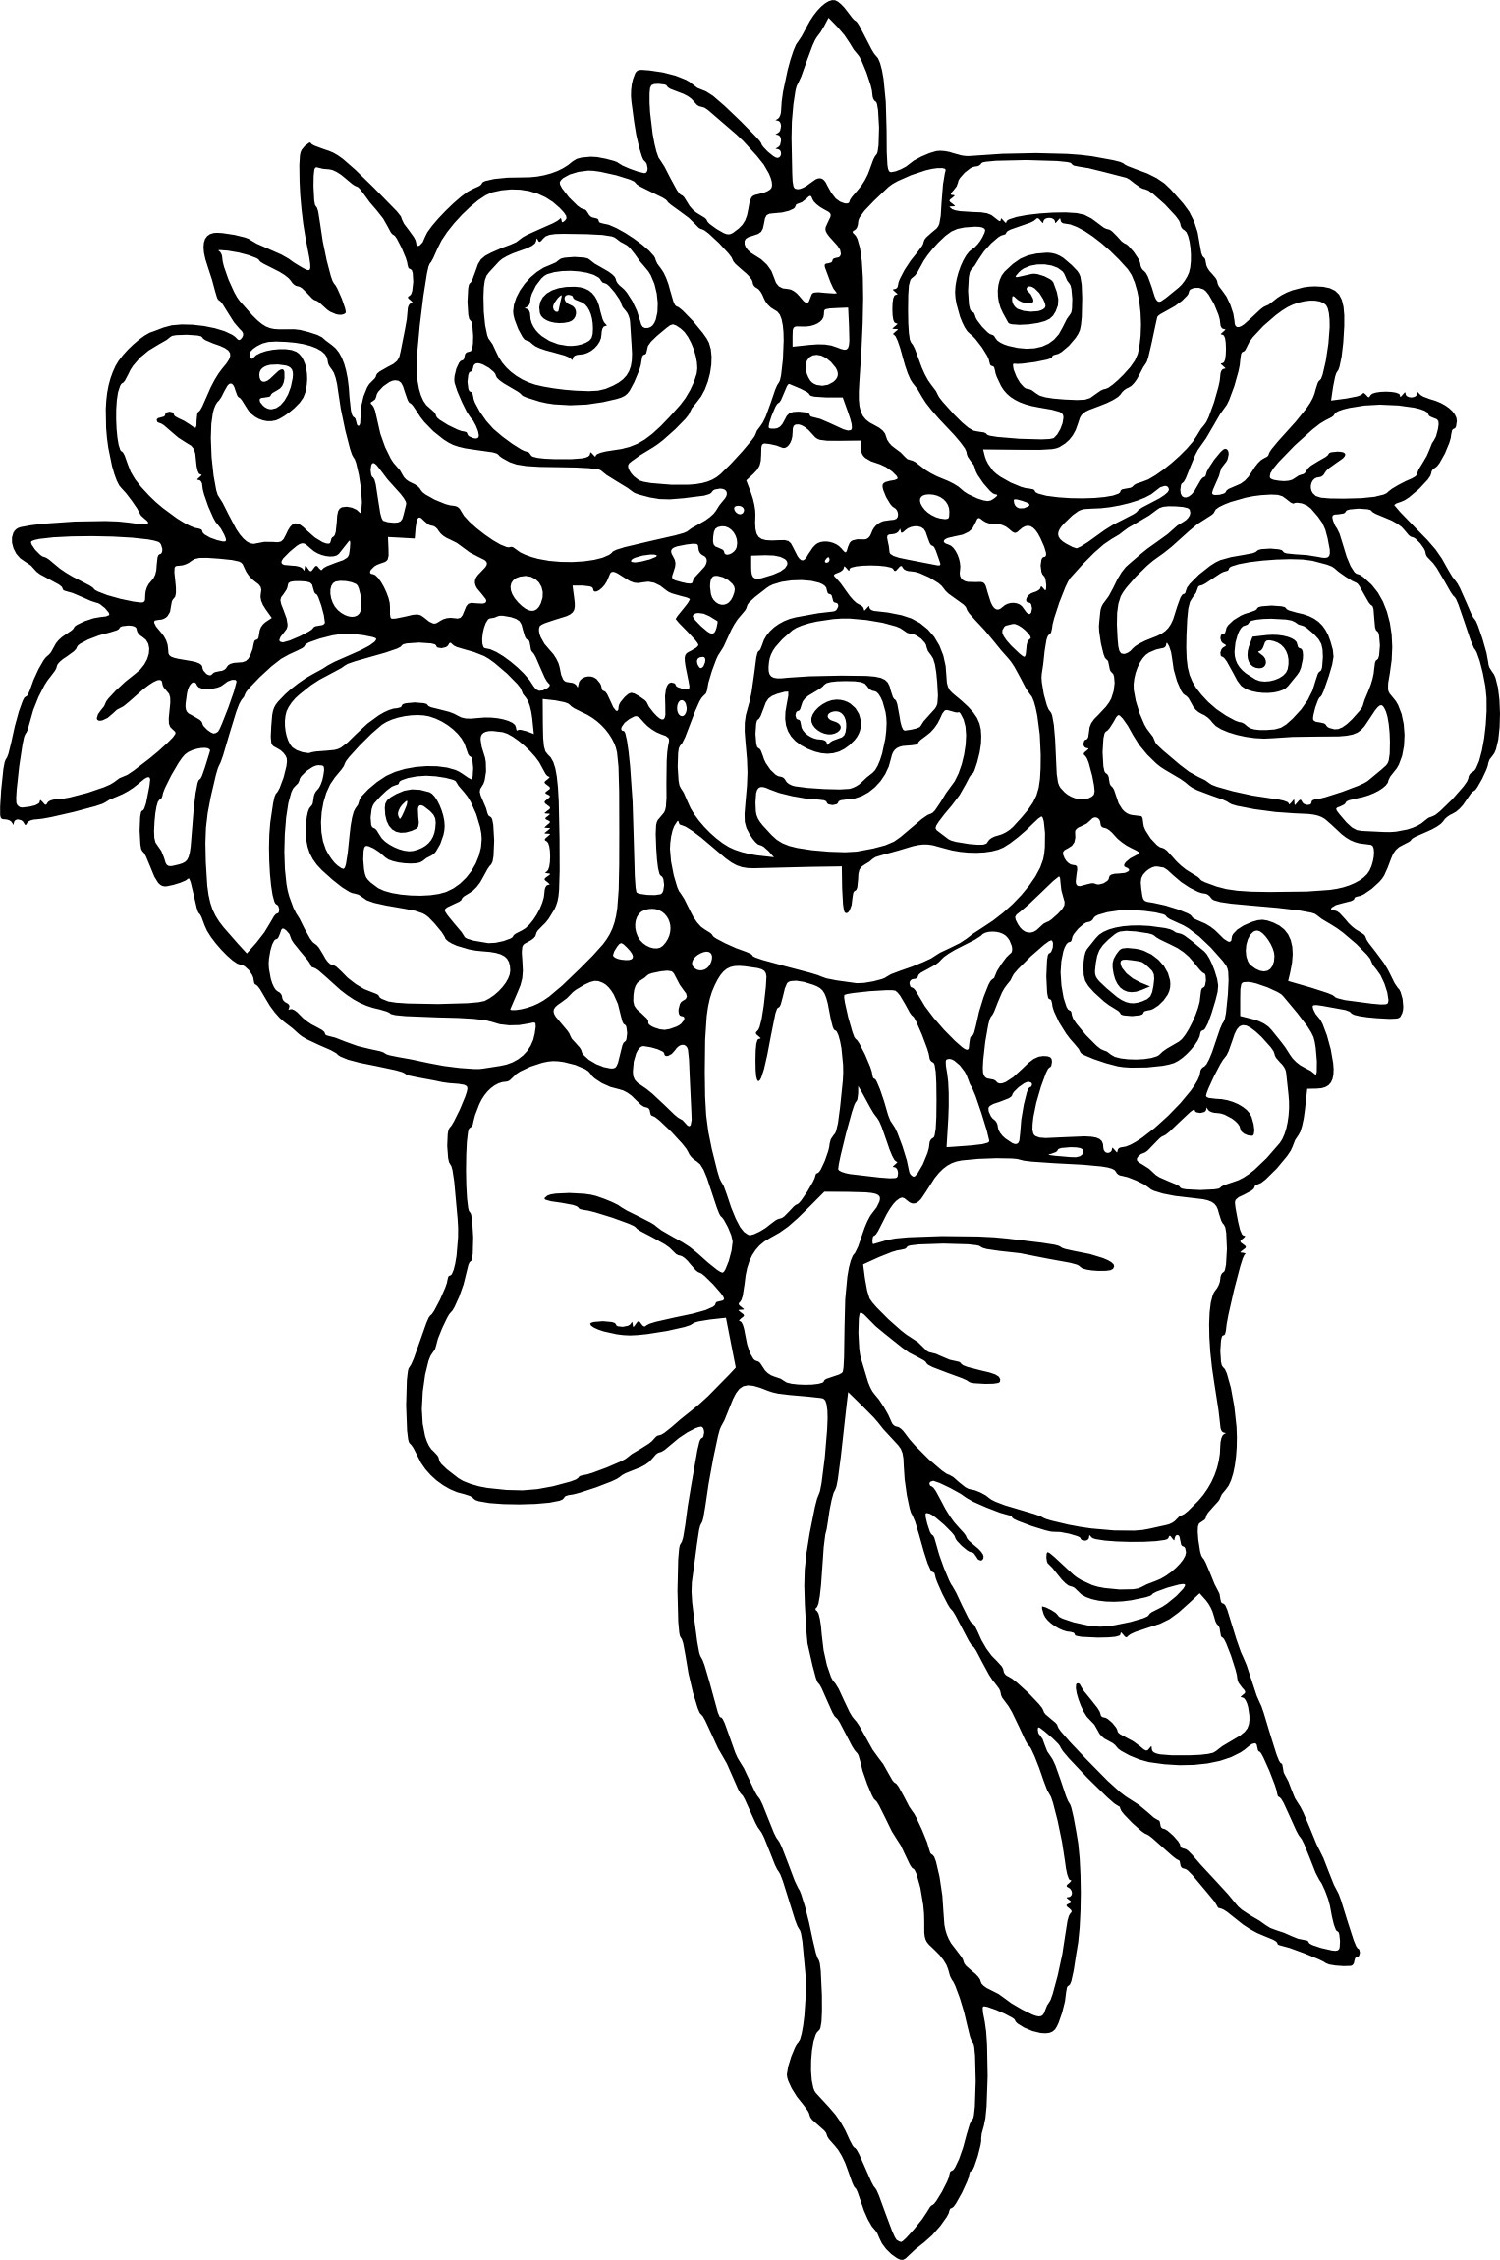 rose coloring book page roses coloring pages getcoloringpagescom page book coloring rose